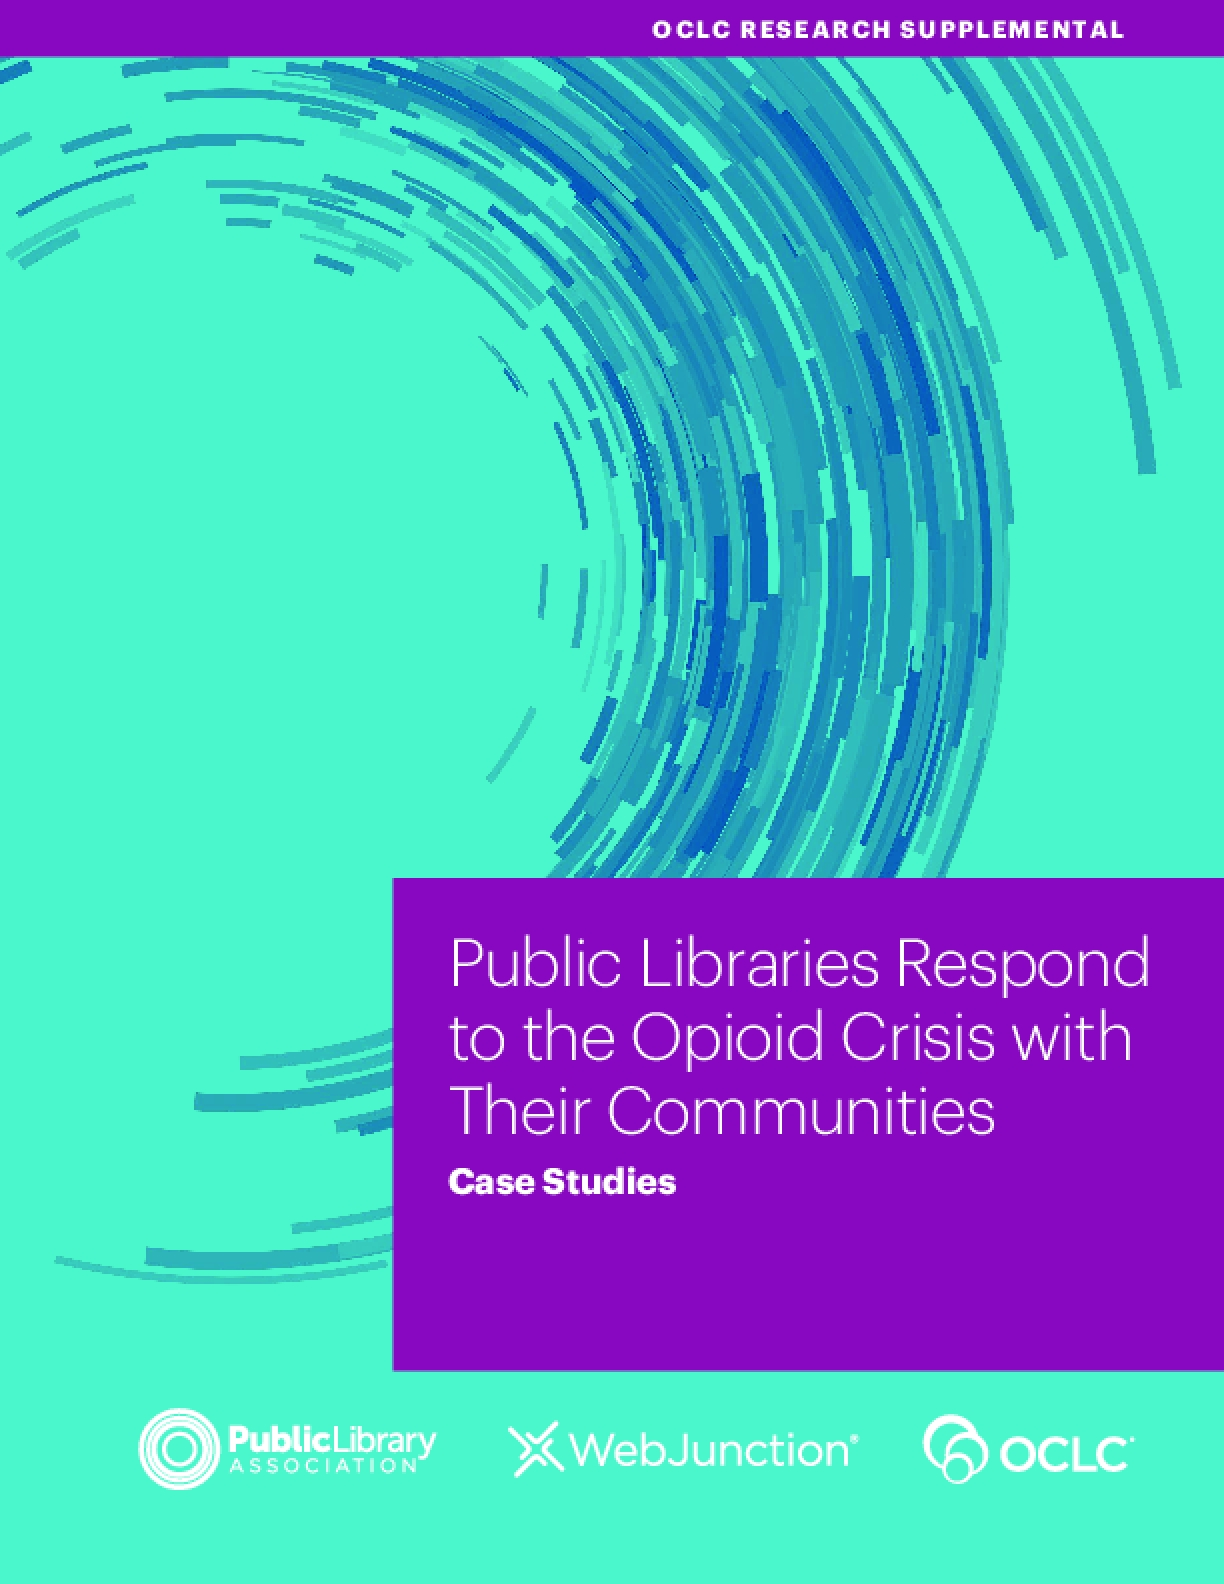 Public Libraries Respond to the Opioid Crisis with Their Communities: Case Studies